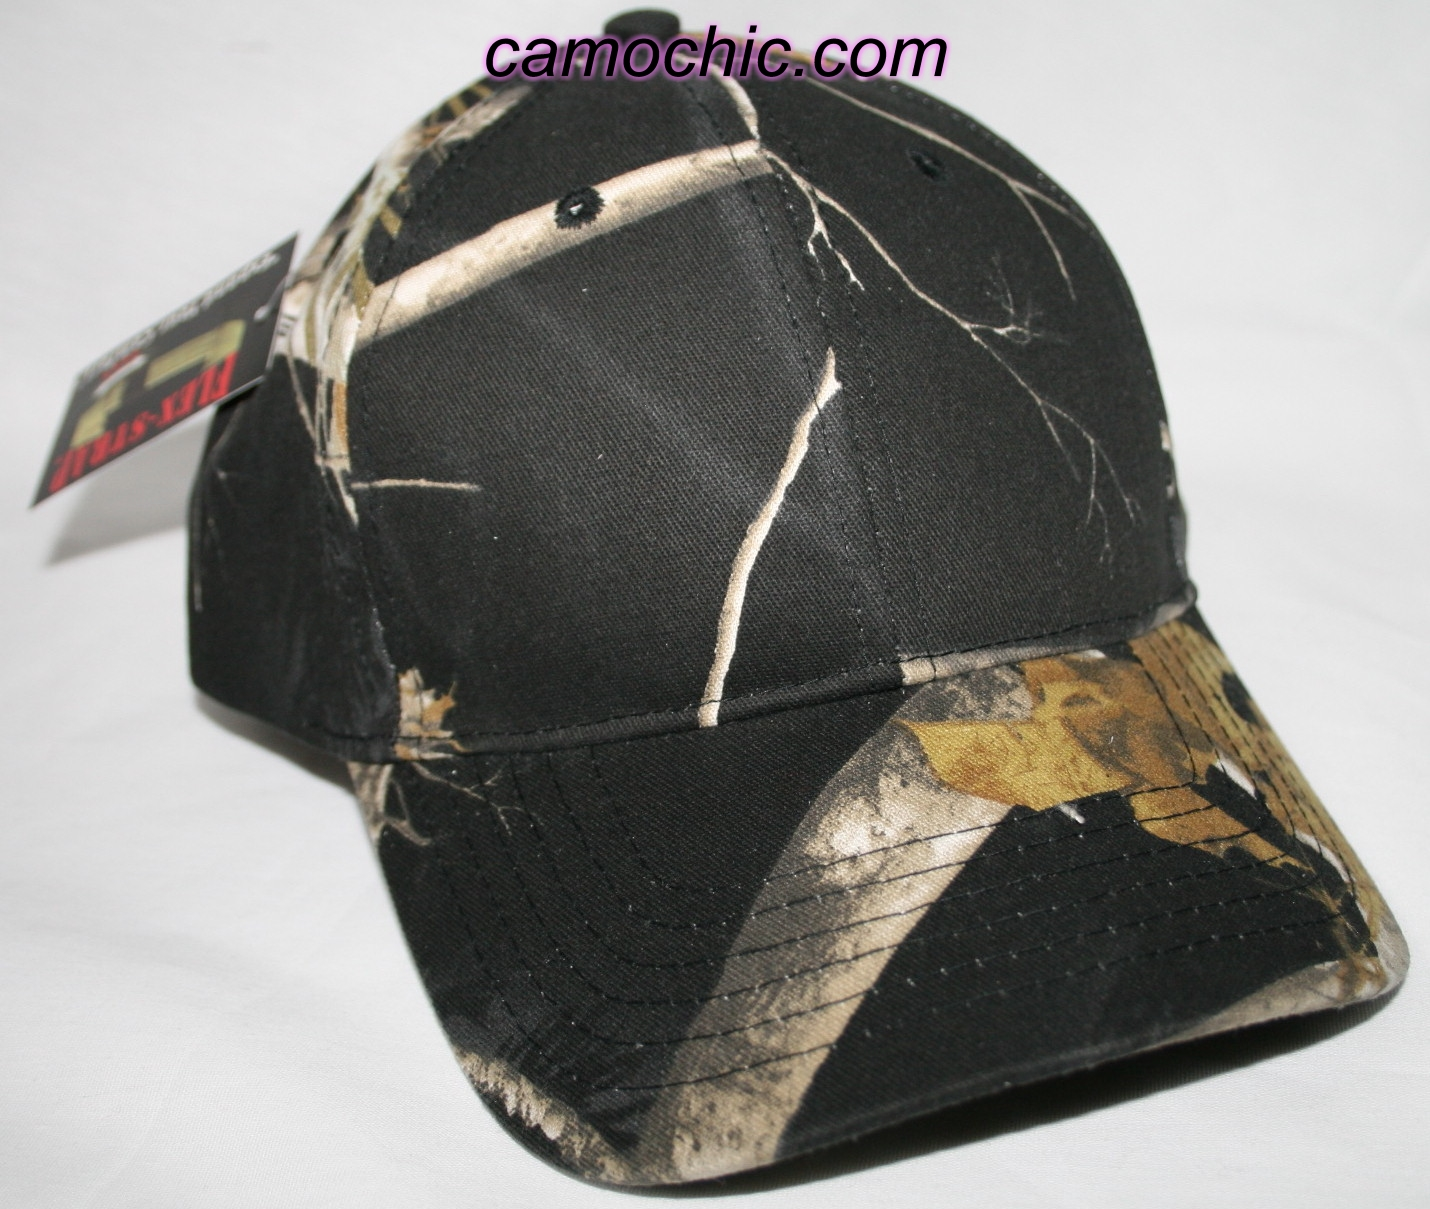 Ford Black Mossy Oak Break Up Country Fatigue Green Logo Cap Hat 179.  Realtree Apc Black O Hat. Realtree Black O Ouflage Hat Cap 610c3436fa10